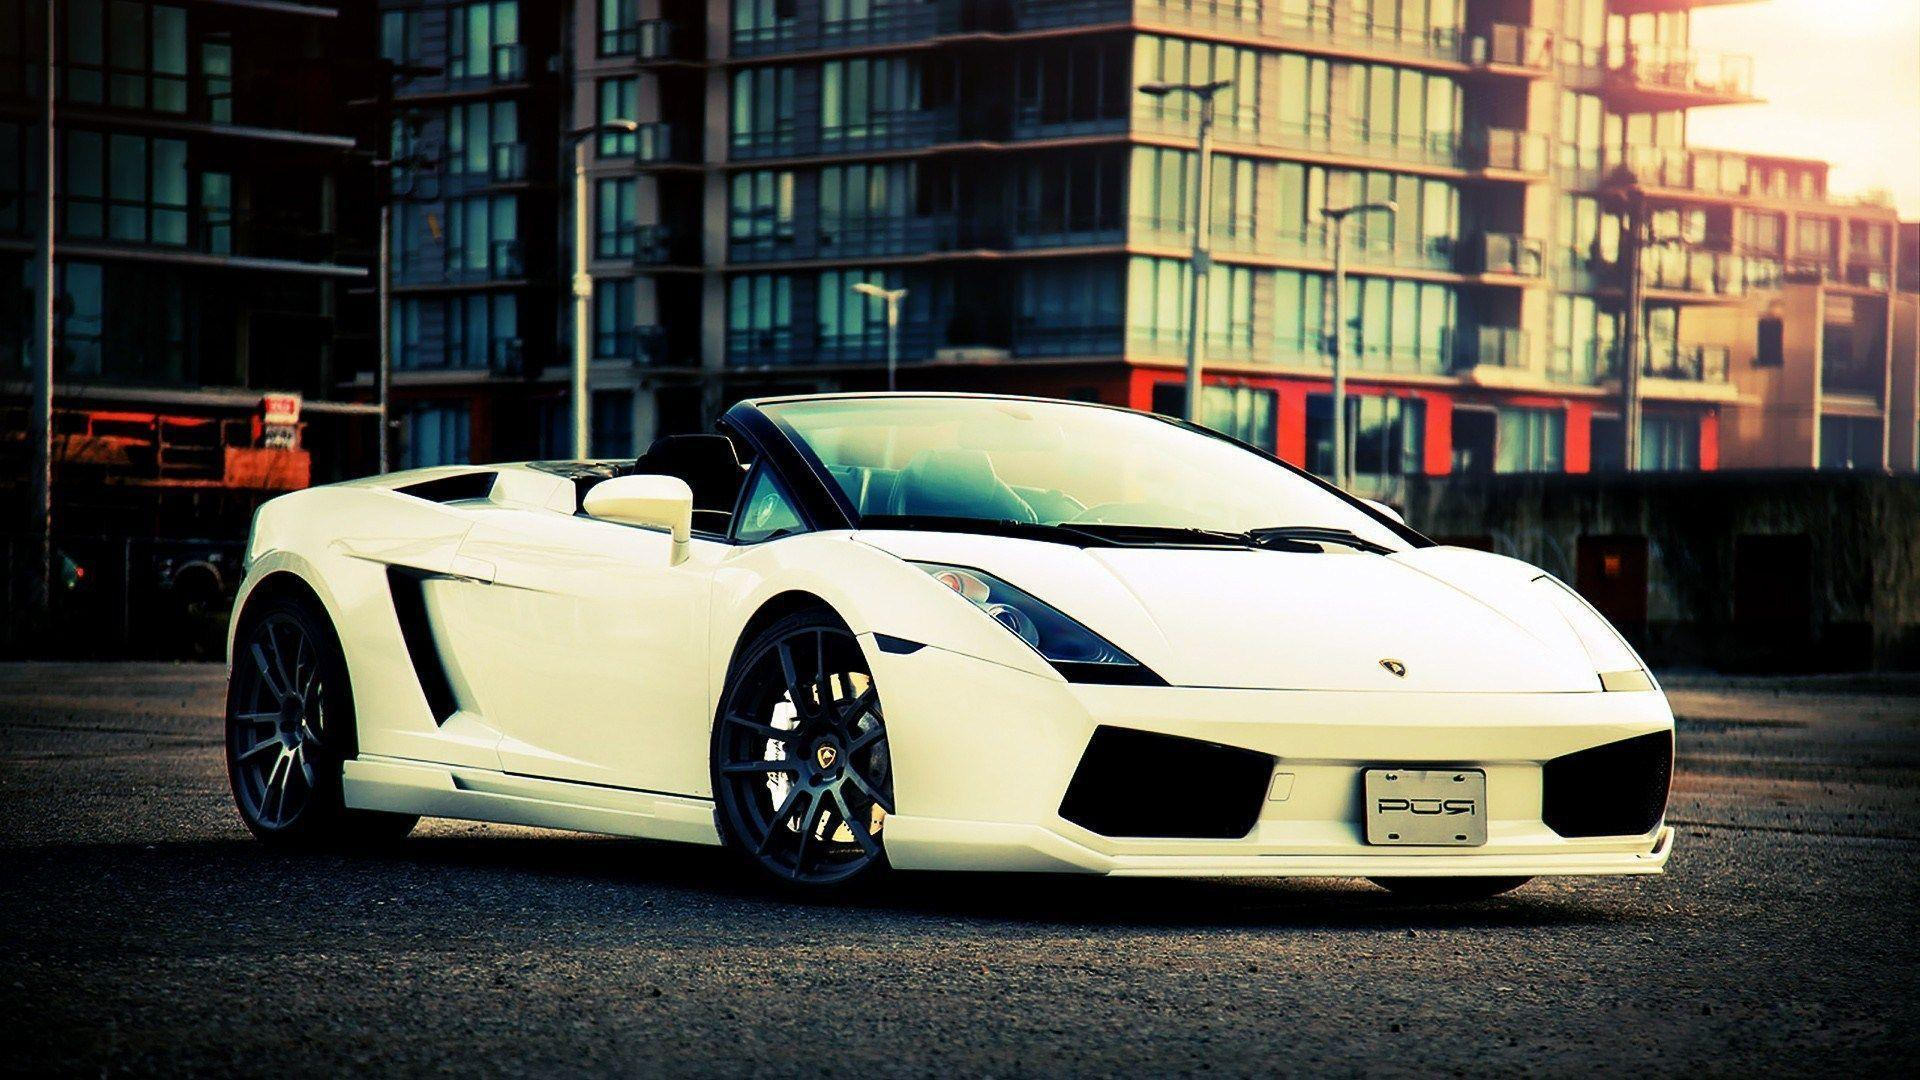 Lamborghini Gallardo Wallpapers HD - Wallpaper Cave